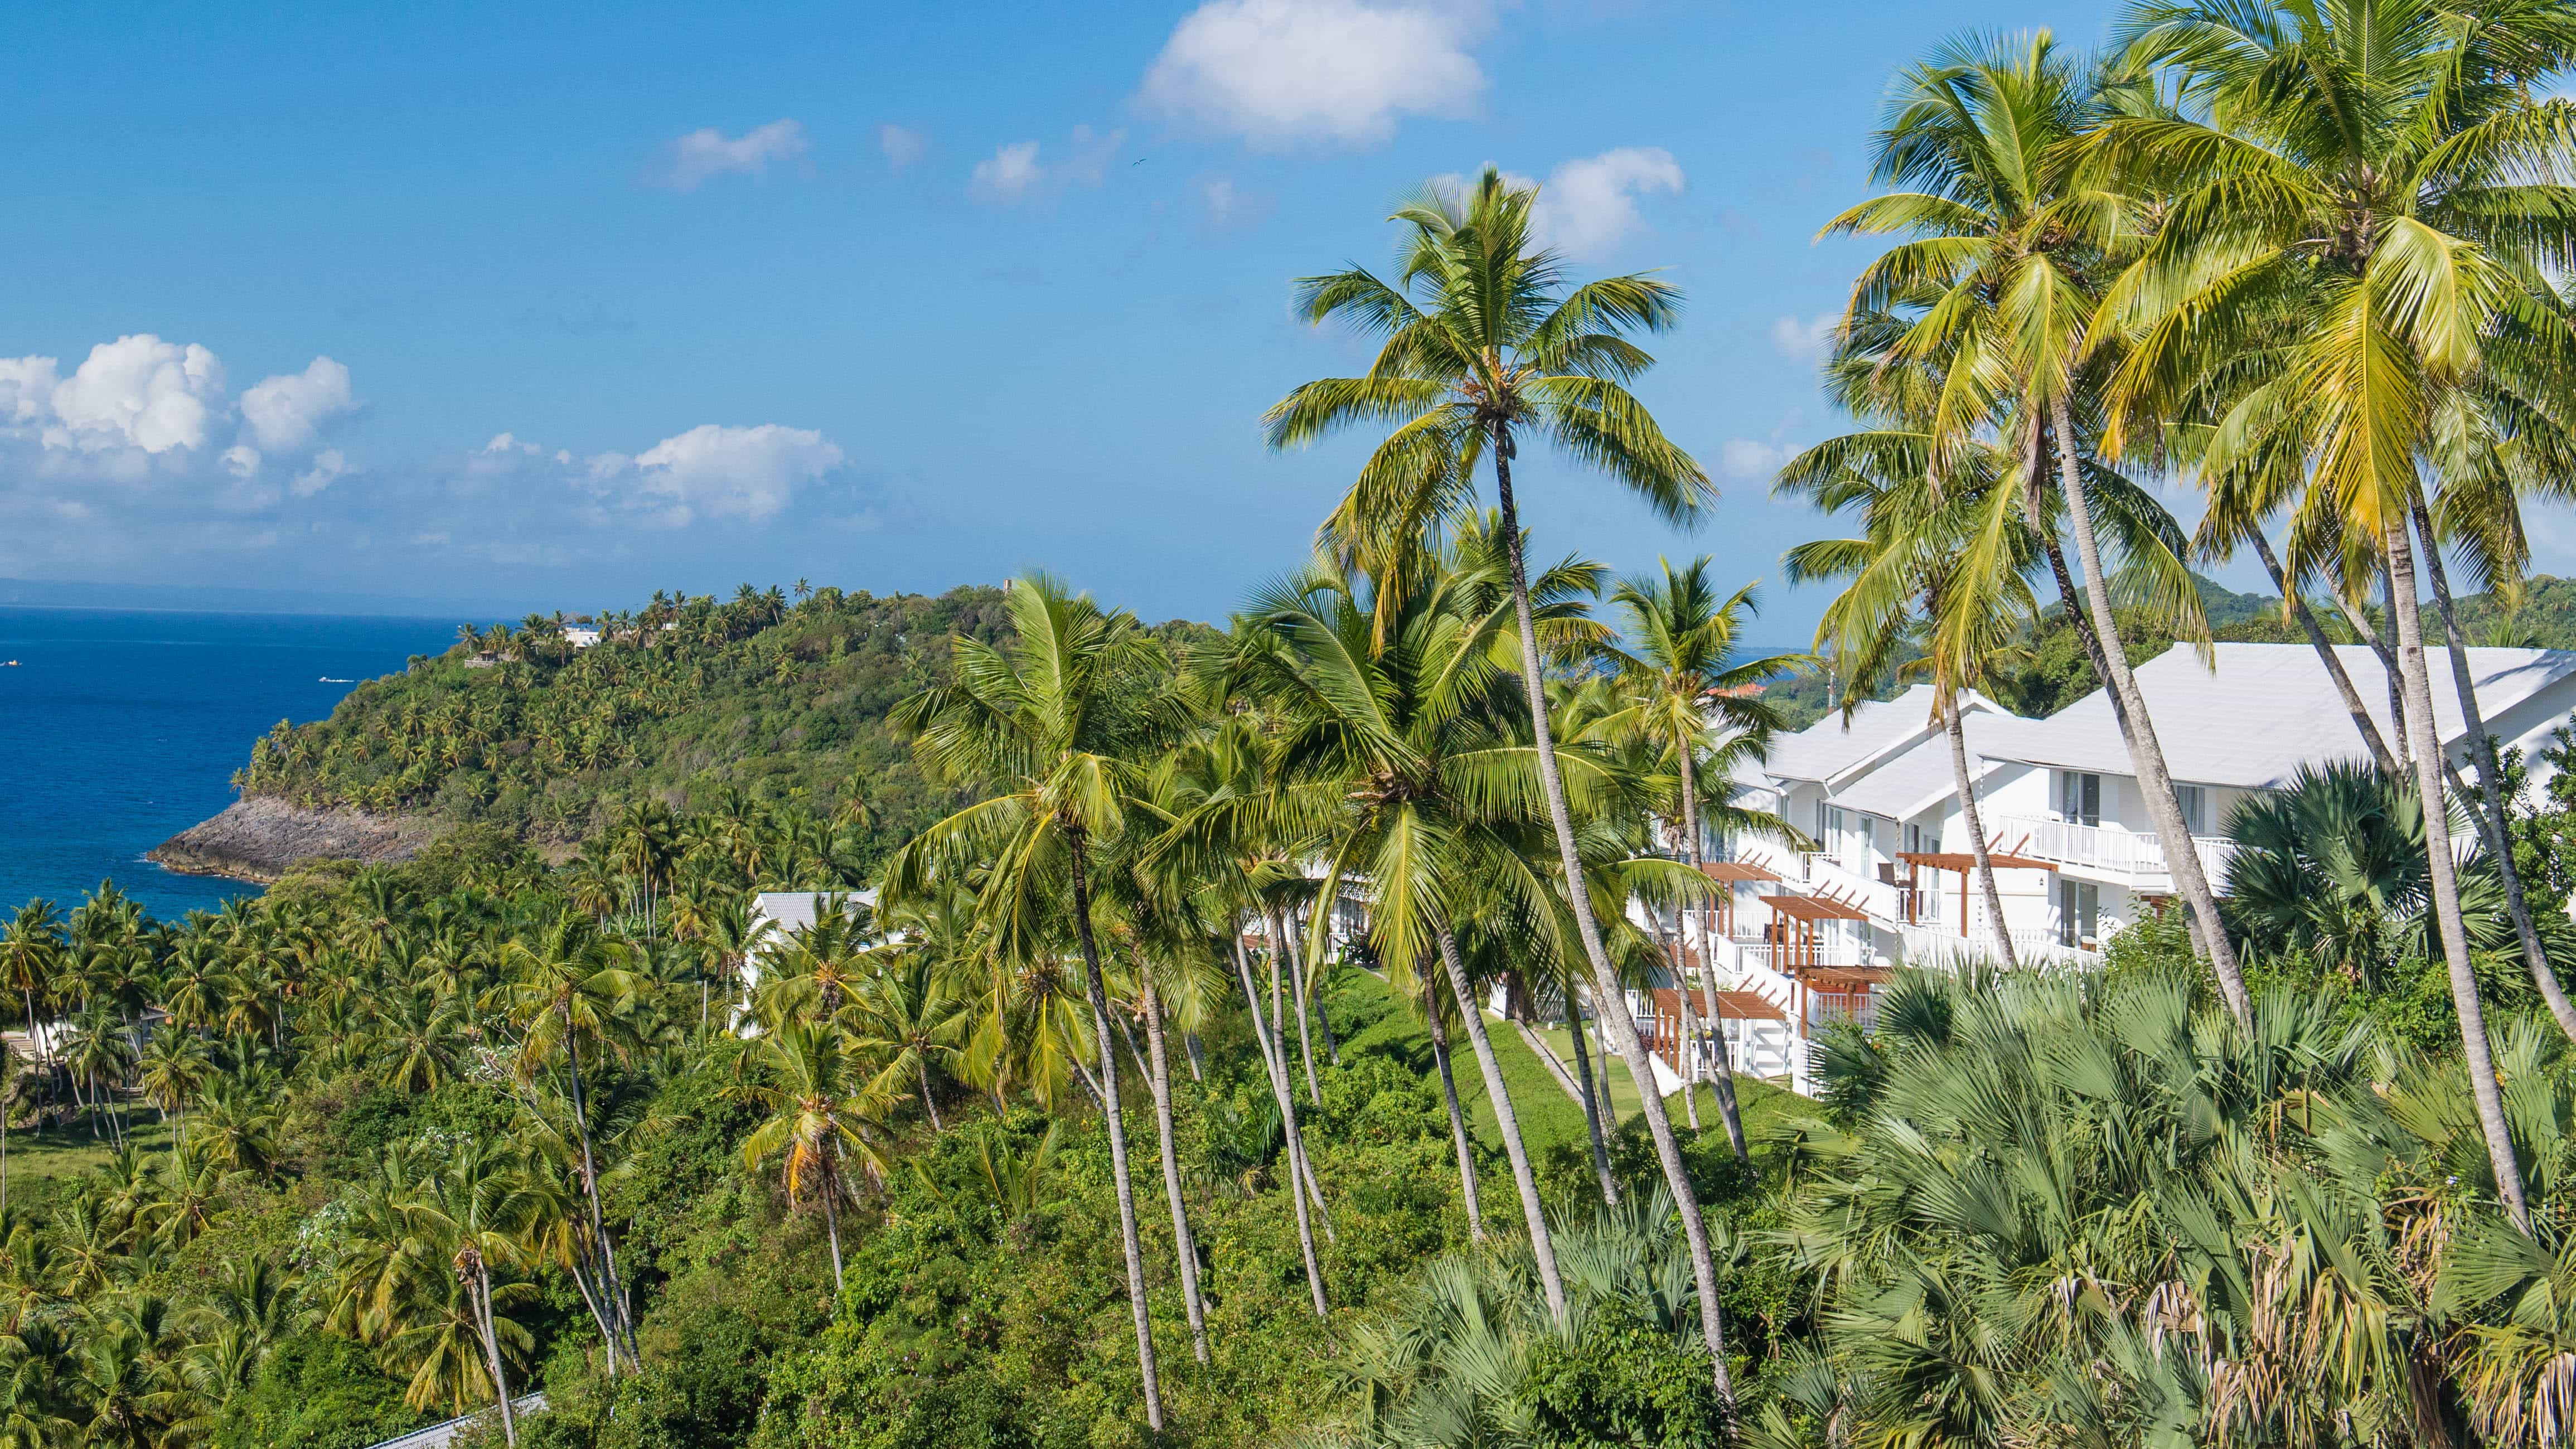 Xeliter is sprinkled on a steep slope affording incredible views of the Samana Bay.